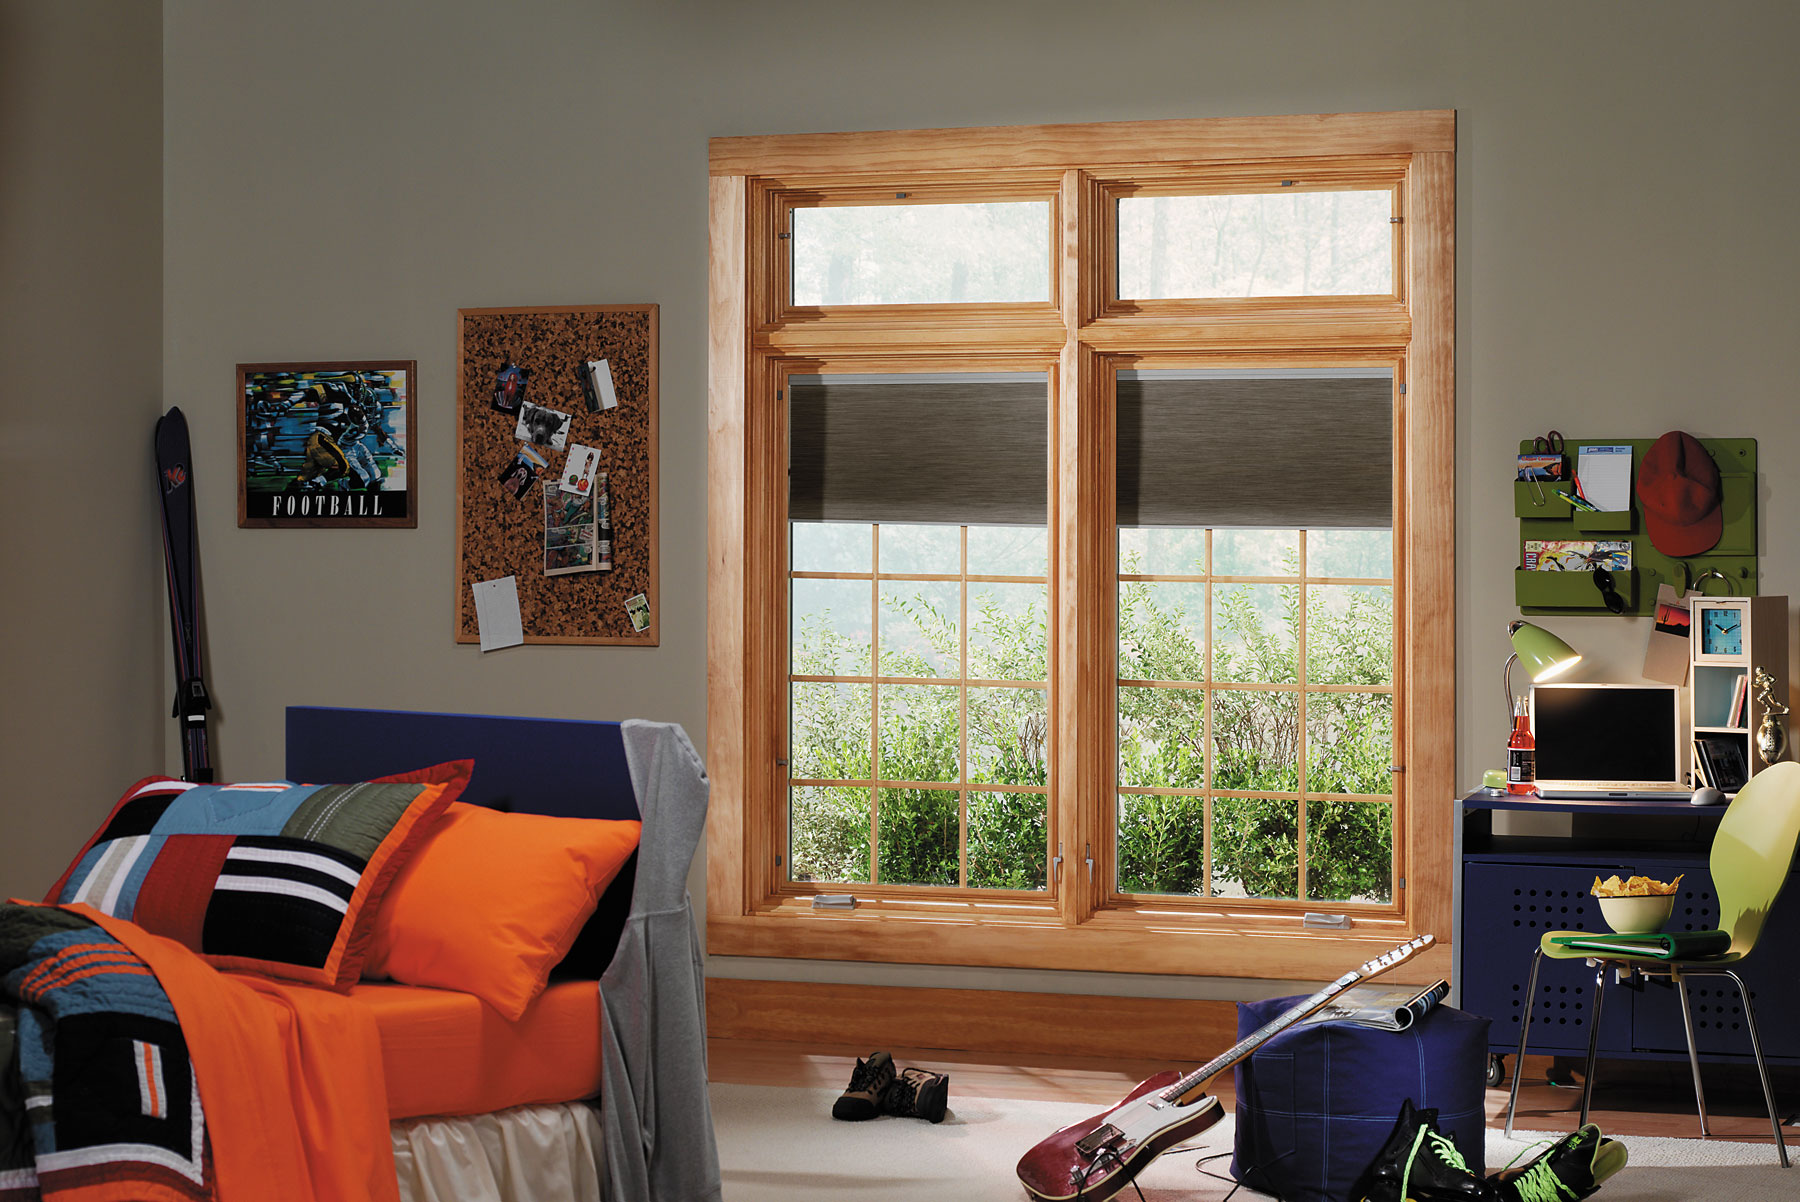 burlywood pella windows matched with gray wall ideas